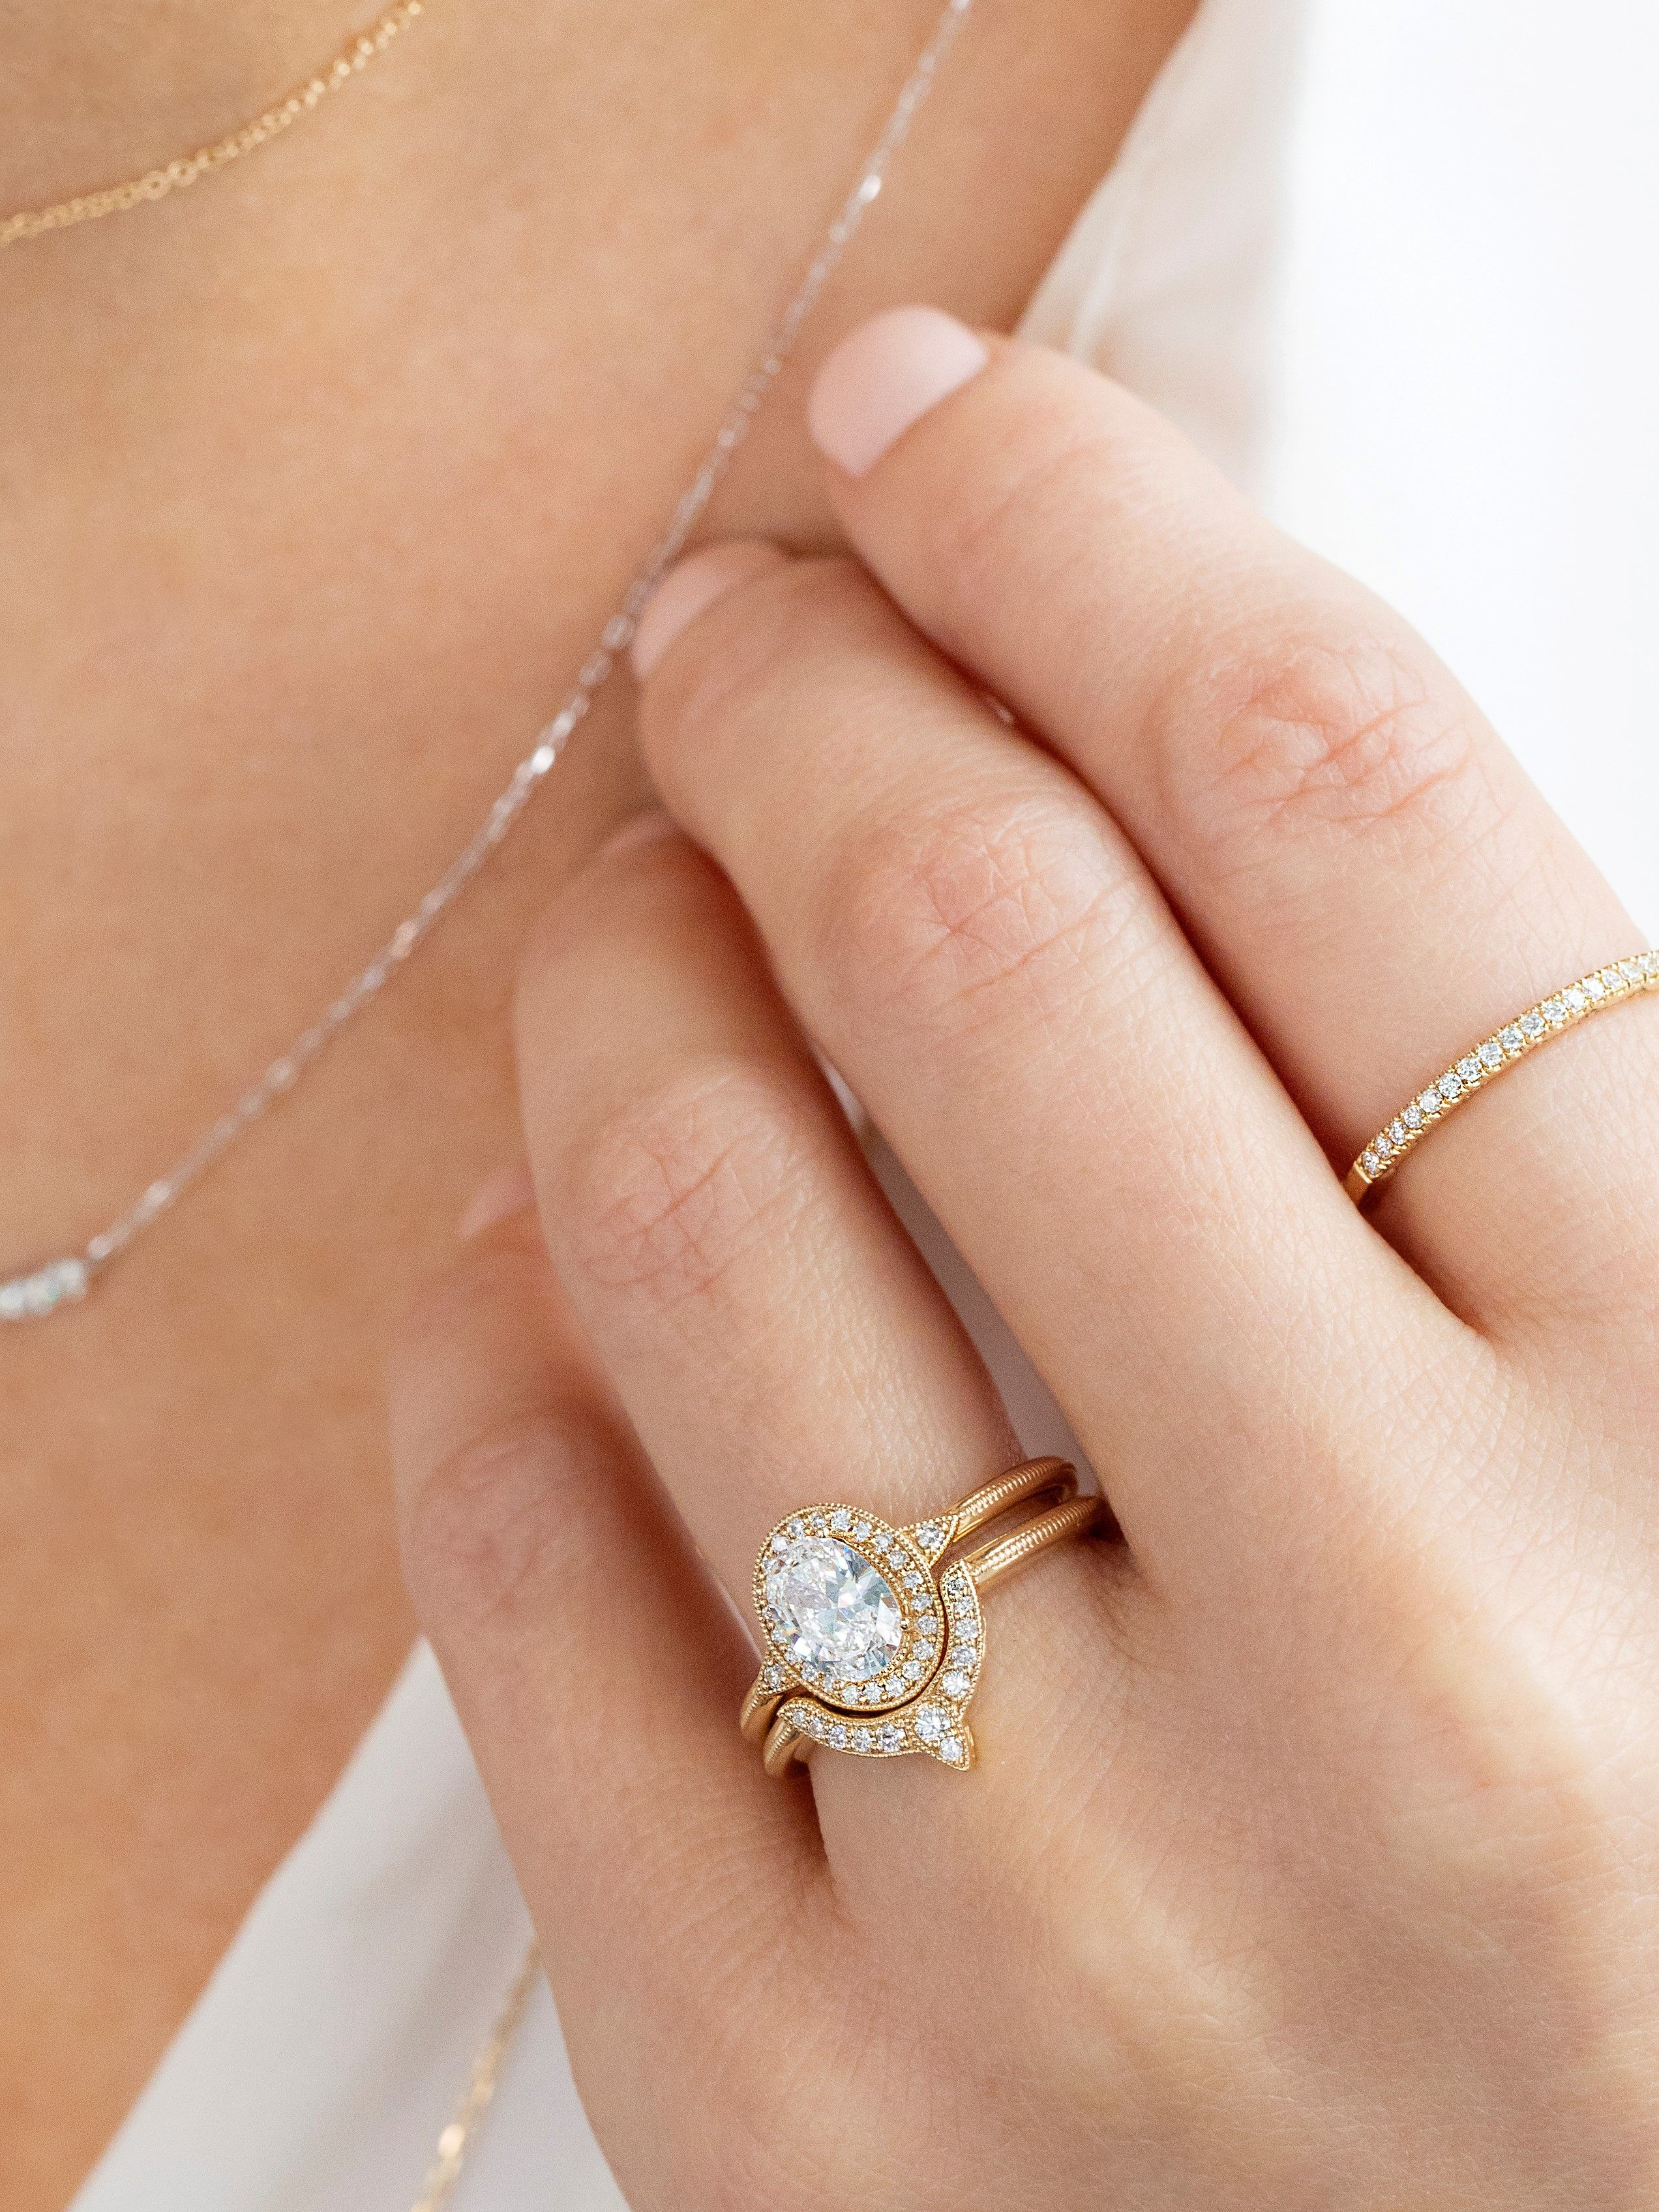 Oval Engagement Ring Diamond Bands And Mixed Metal Necklaces From